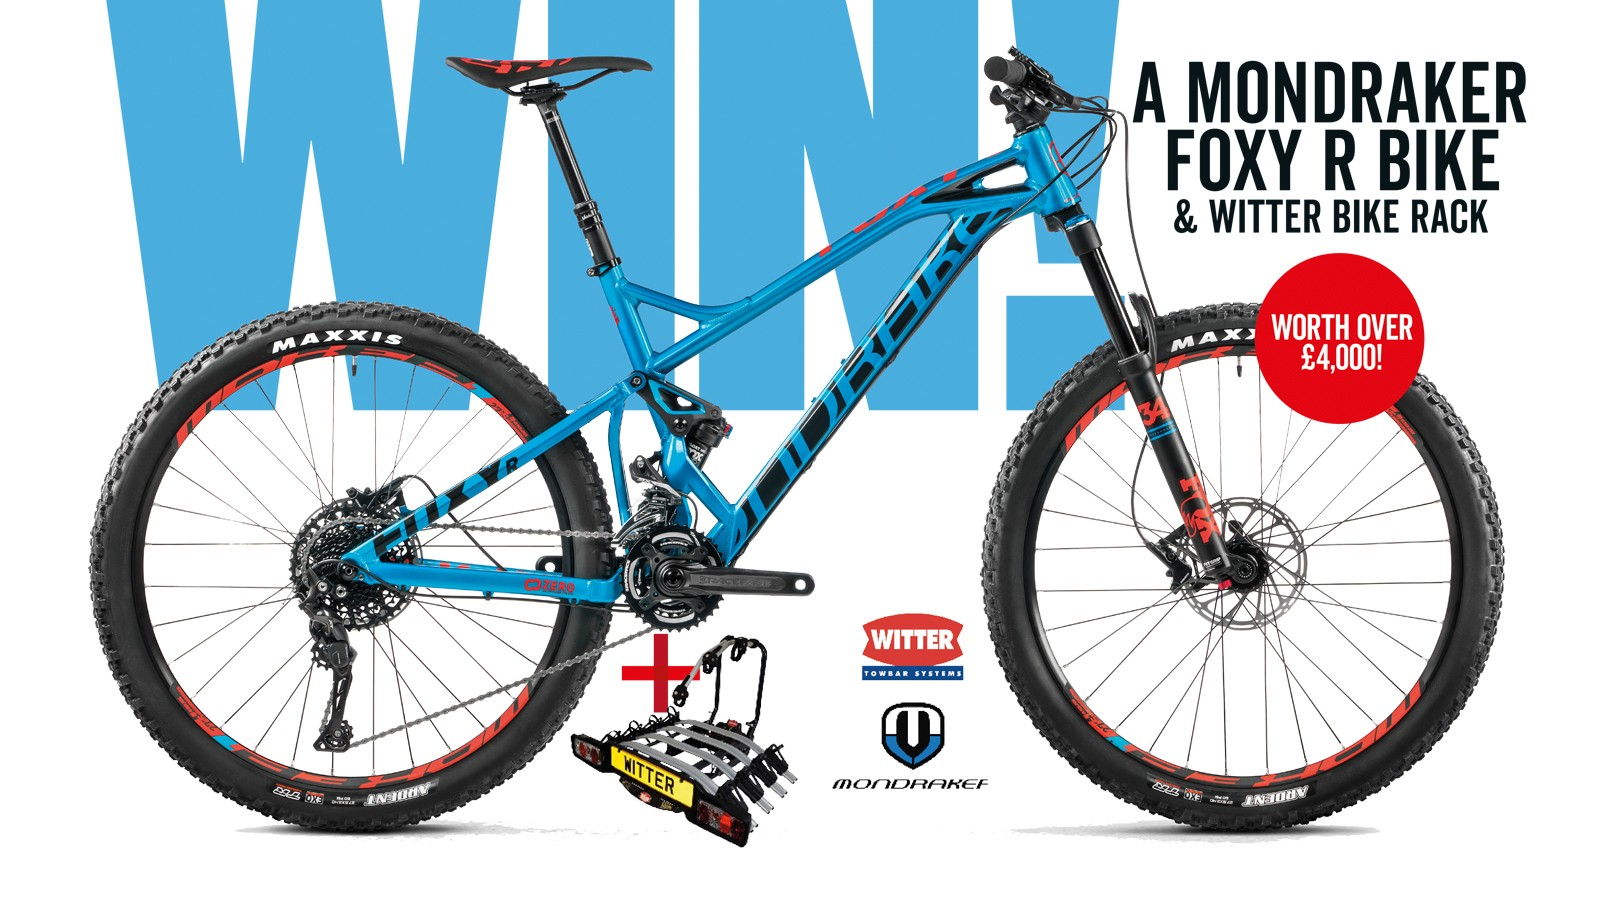 Win a Mondraker bike and bike rack